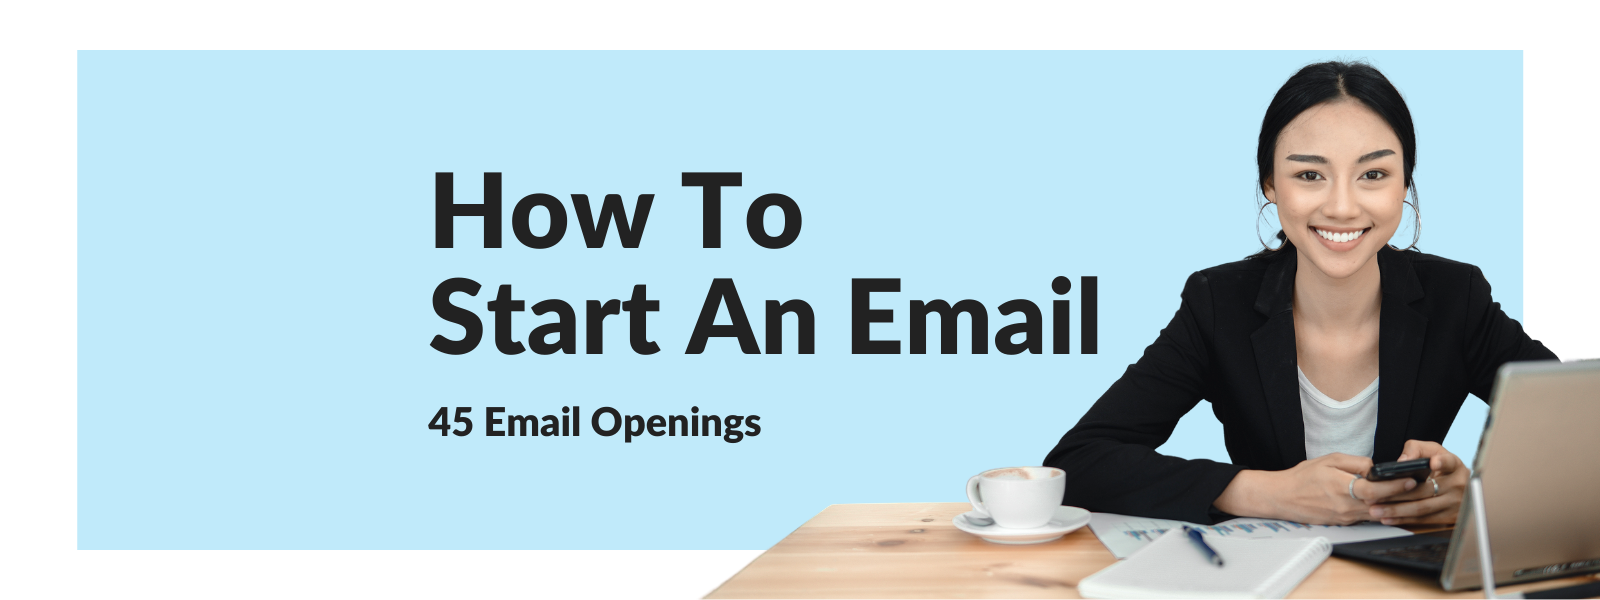 How to start an email - 45 useful email openings - Talaera Business English Training